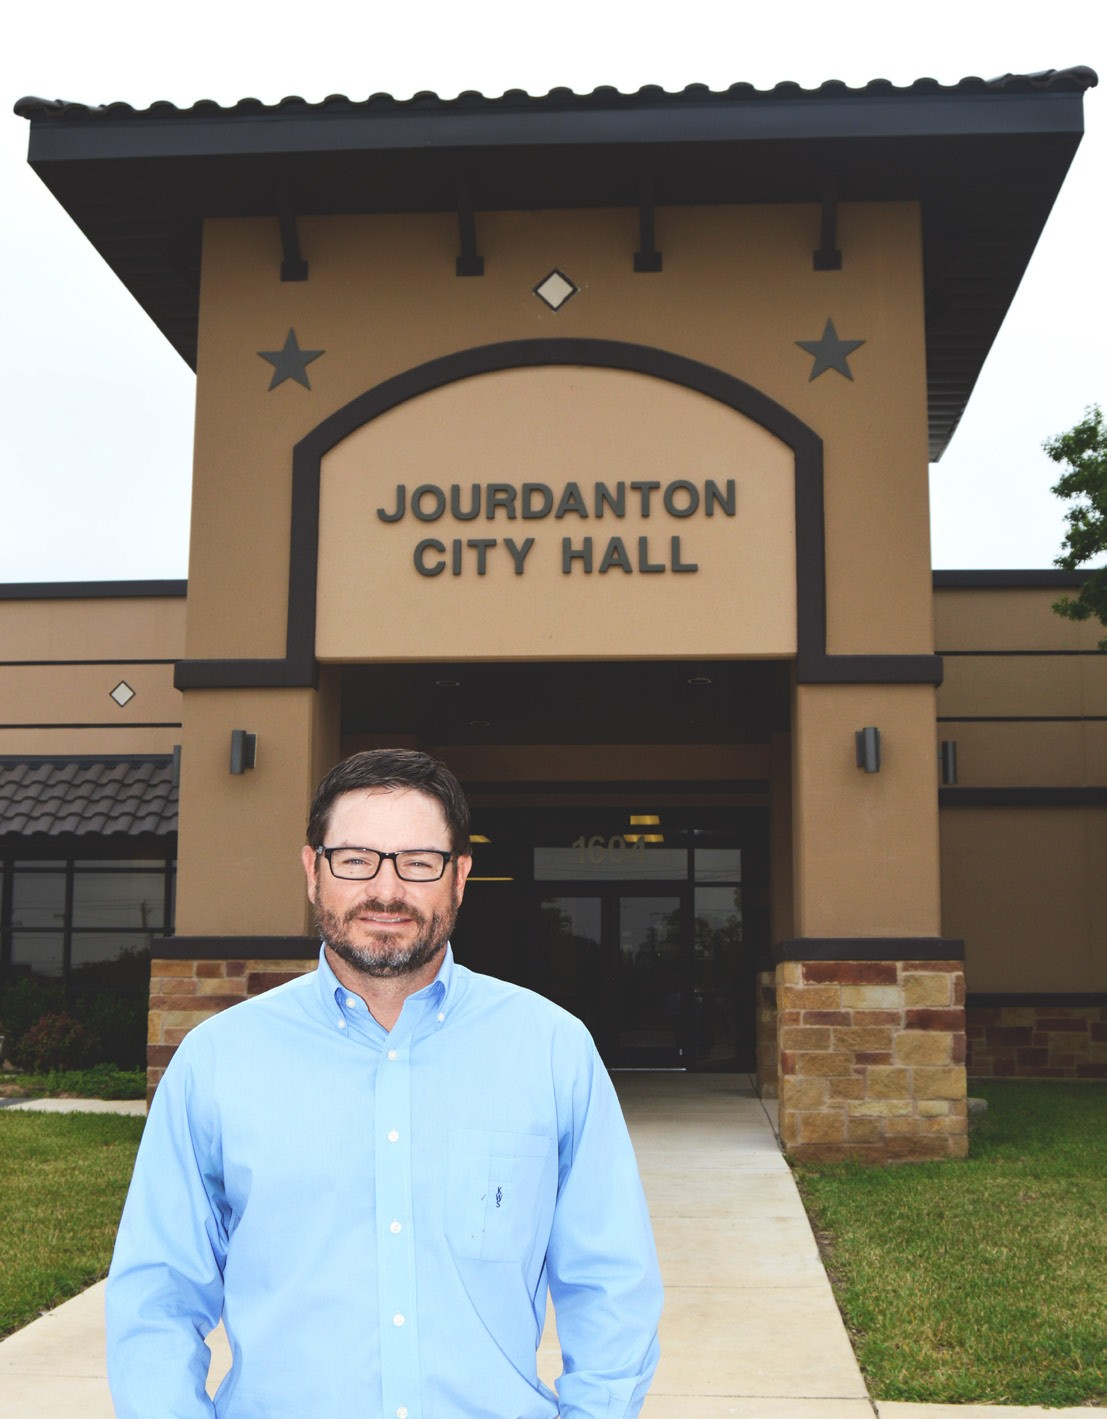 Kendall Schorsch is ready to continue Jourdanton's positive momentum as their new city manager.